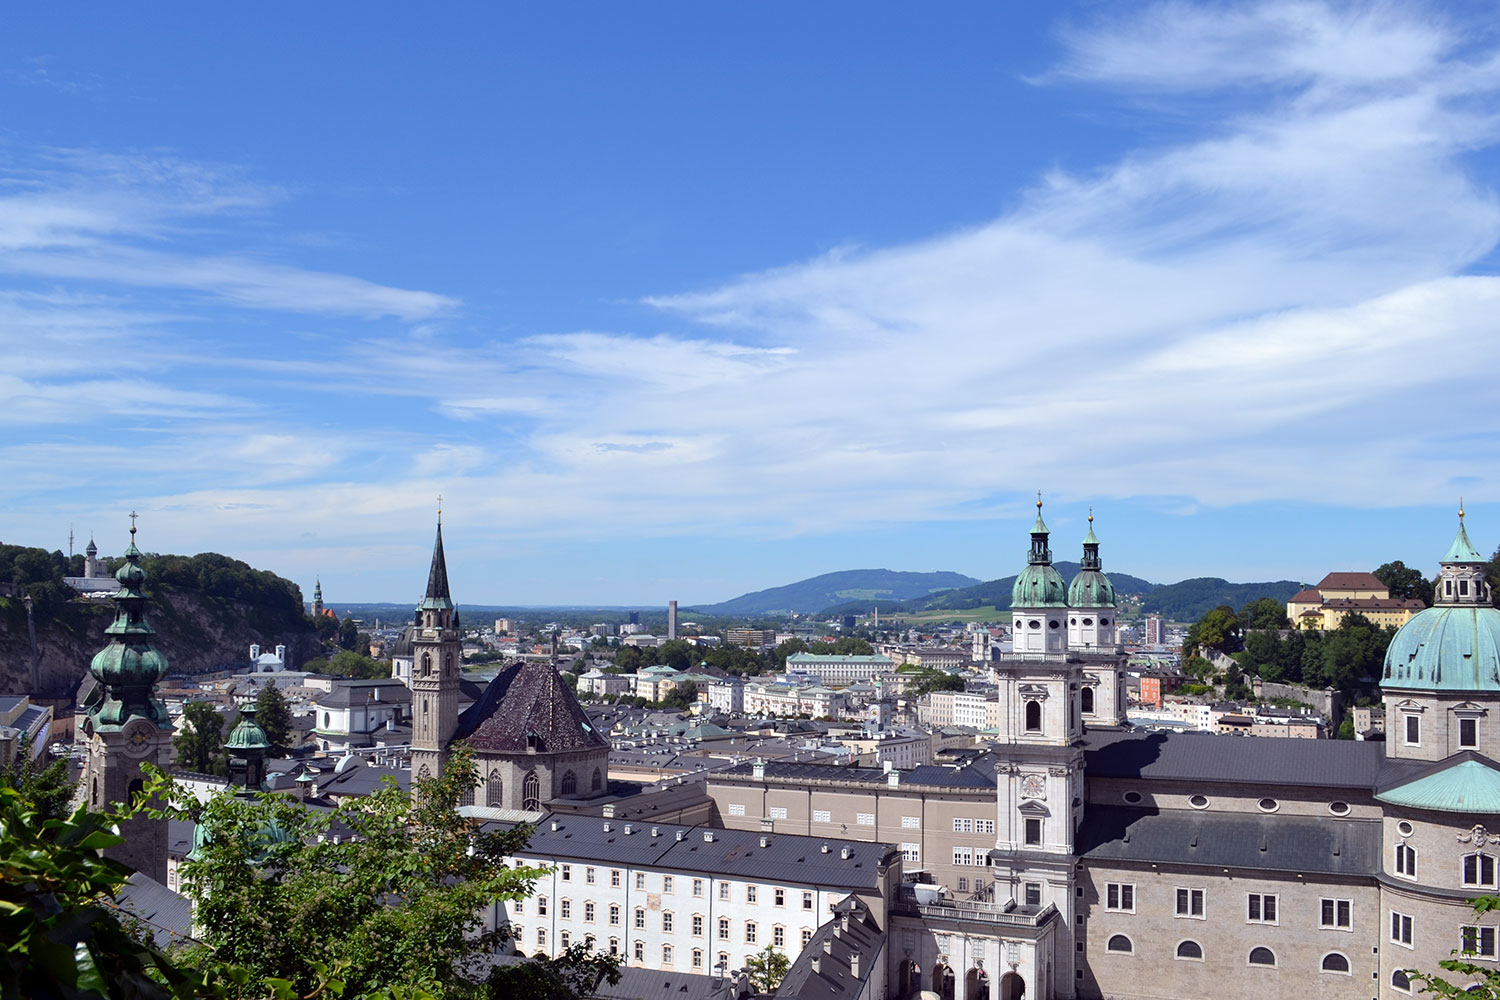 5 Things that Rocked my World in July - Salzburg 2